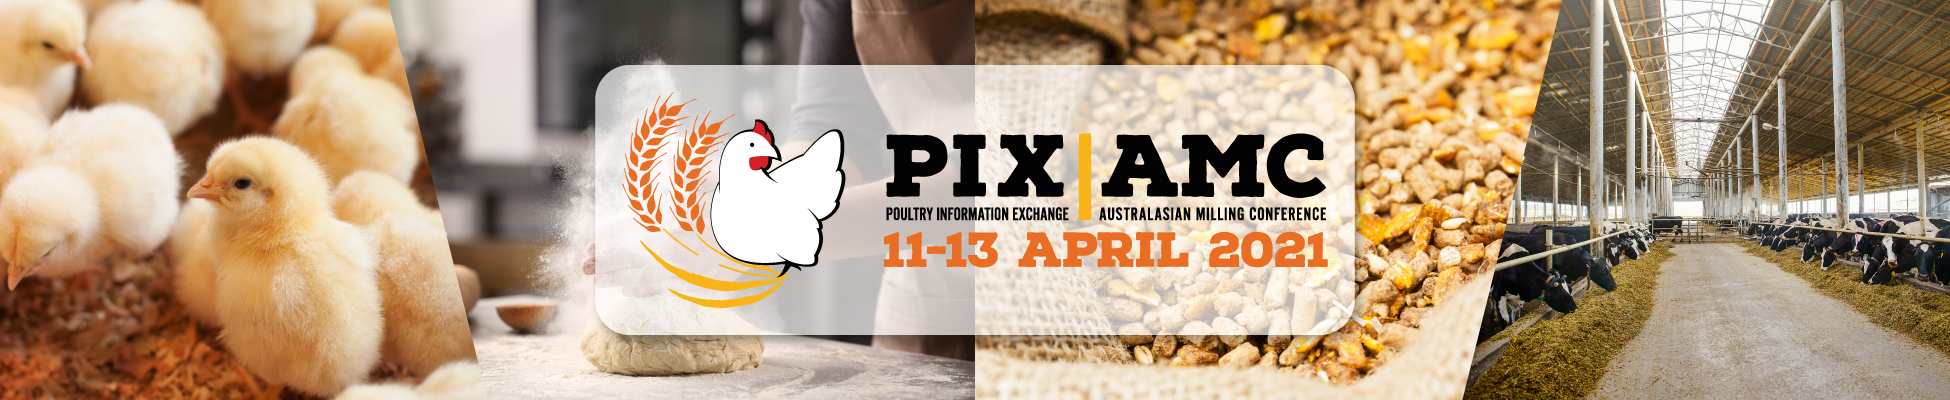 Poultry Information Exchange and Australasian Milling Conference 2021